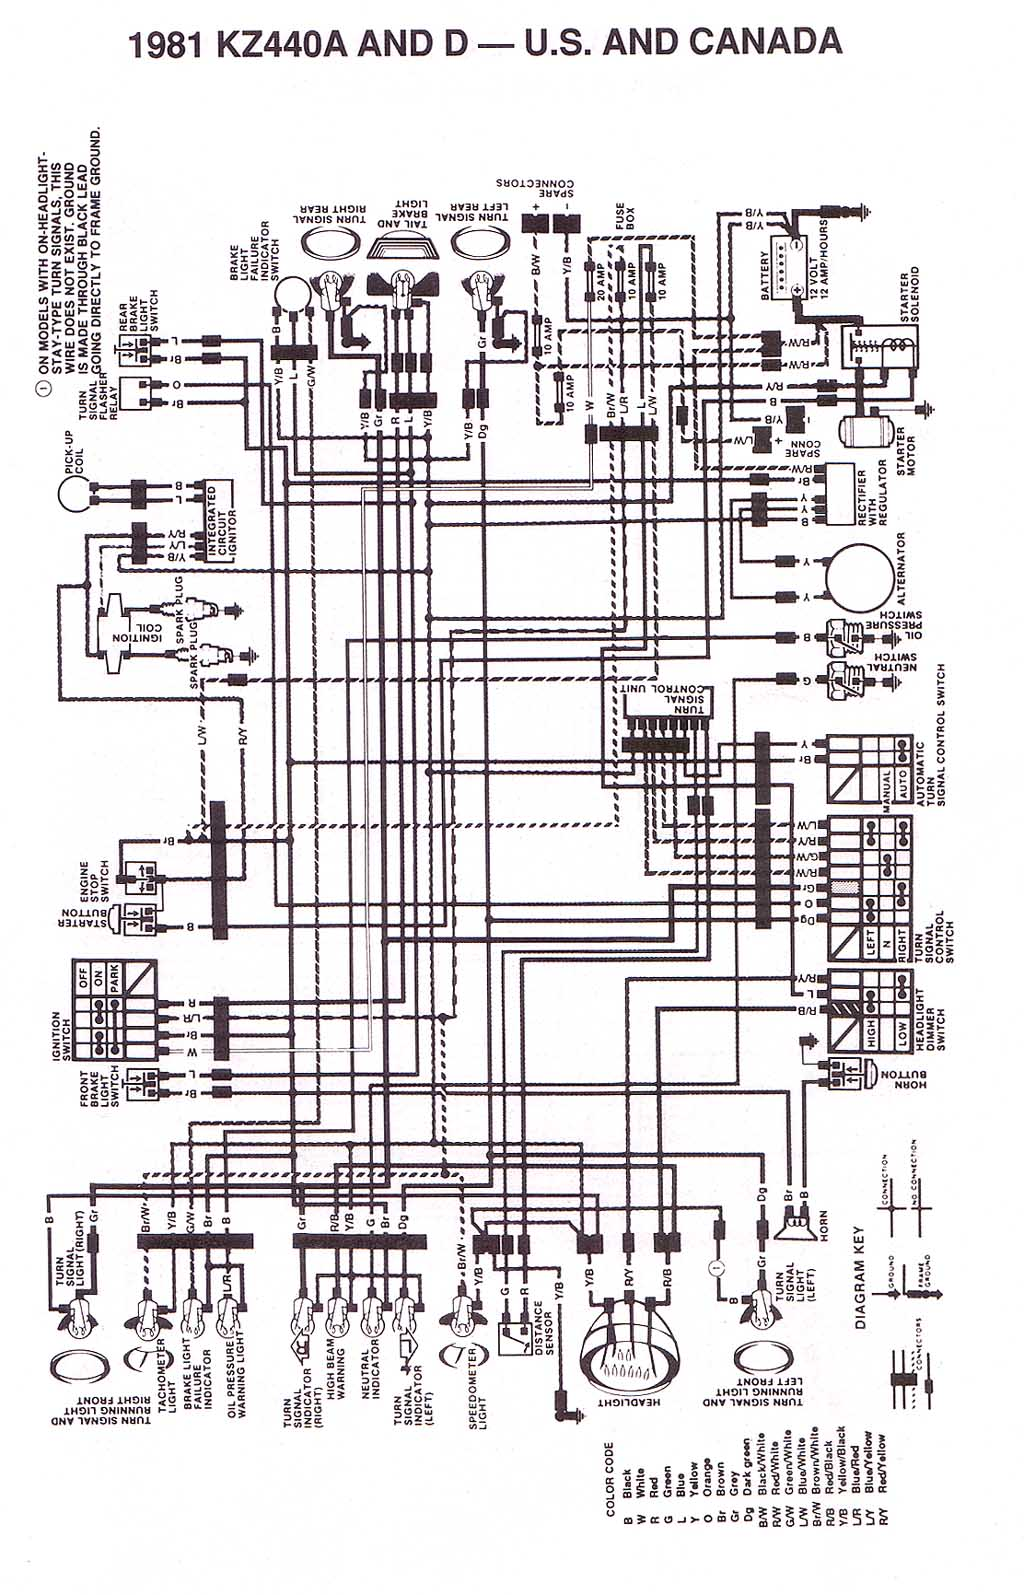 KZ440A and D wiring diagram %28US%29 1981 kawasaki ltd 440 rebuild thread page 5 barf bay area 1981 kawasaki 440 ltd wiring diagram at bayanpartner.co